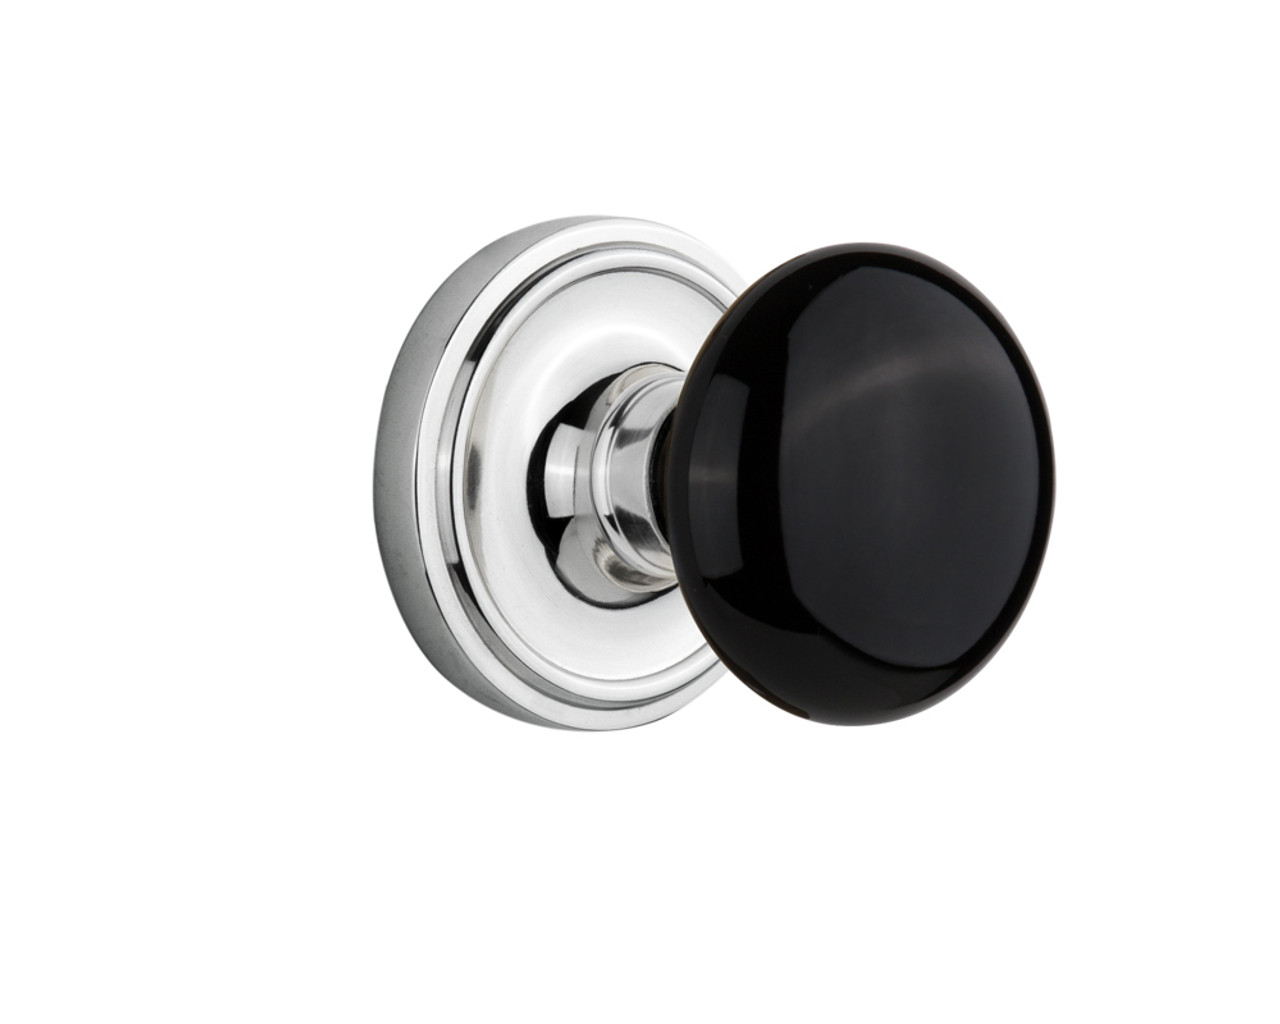 Nostalgic Warehouse Classic Rosette Double Dummy Black Porcelain Door Knob in Bright Chrome (NW-710194)